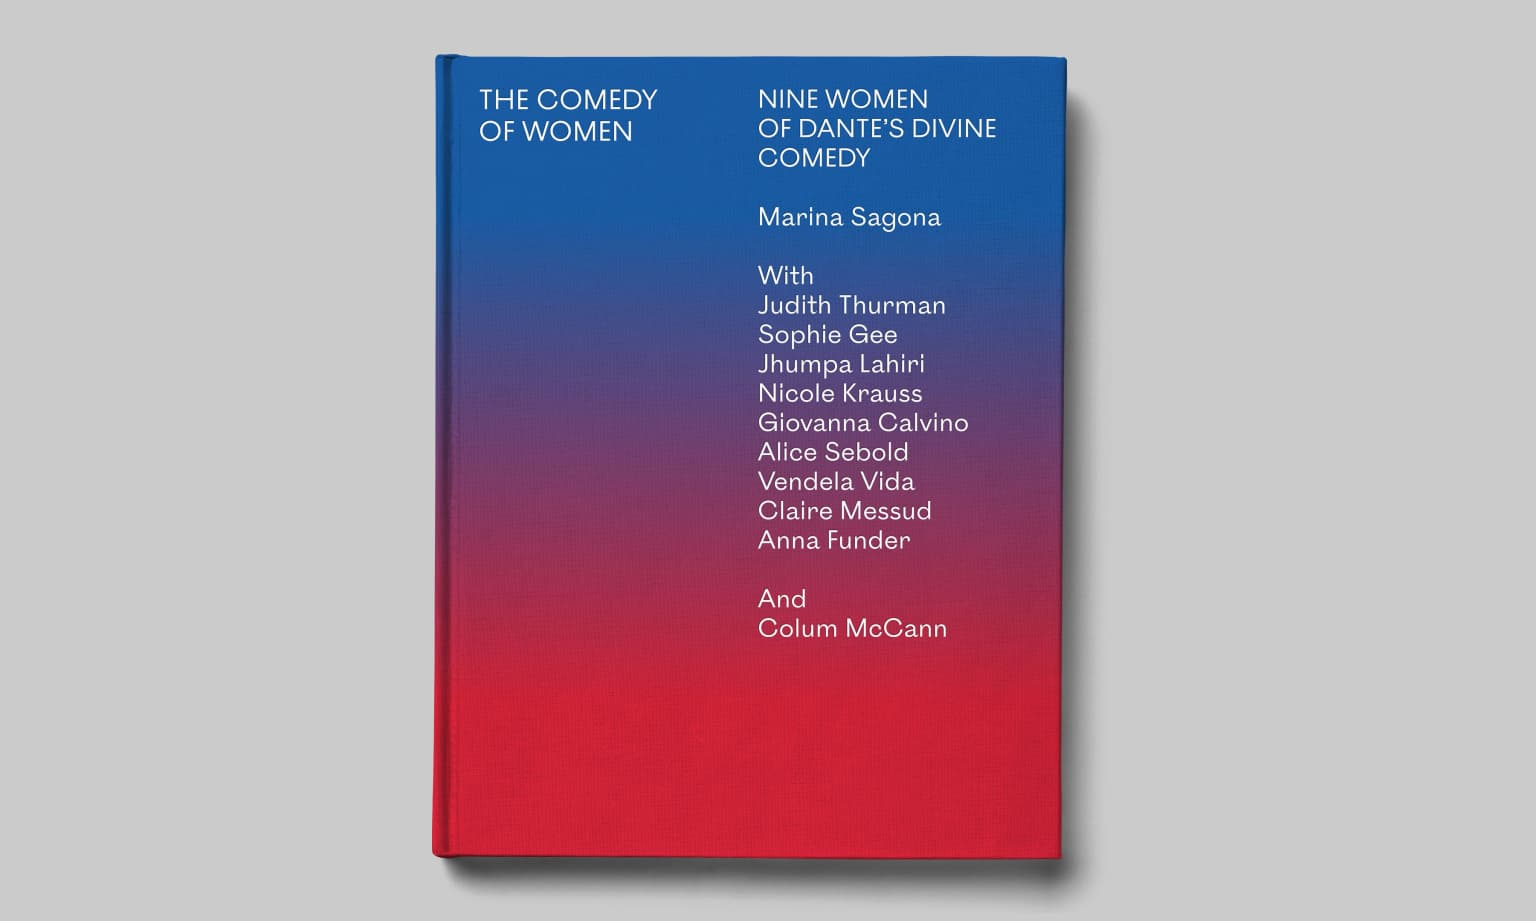 Marina Sagona, Comedy of Women